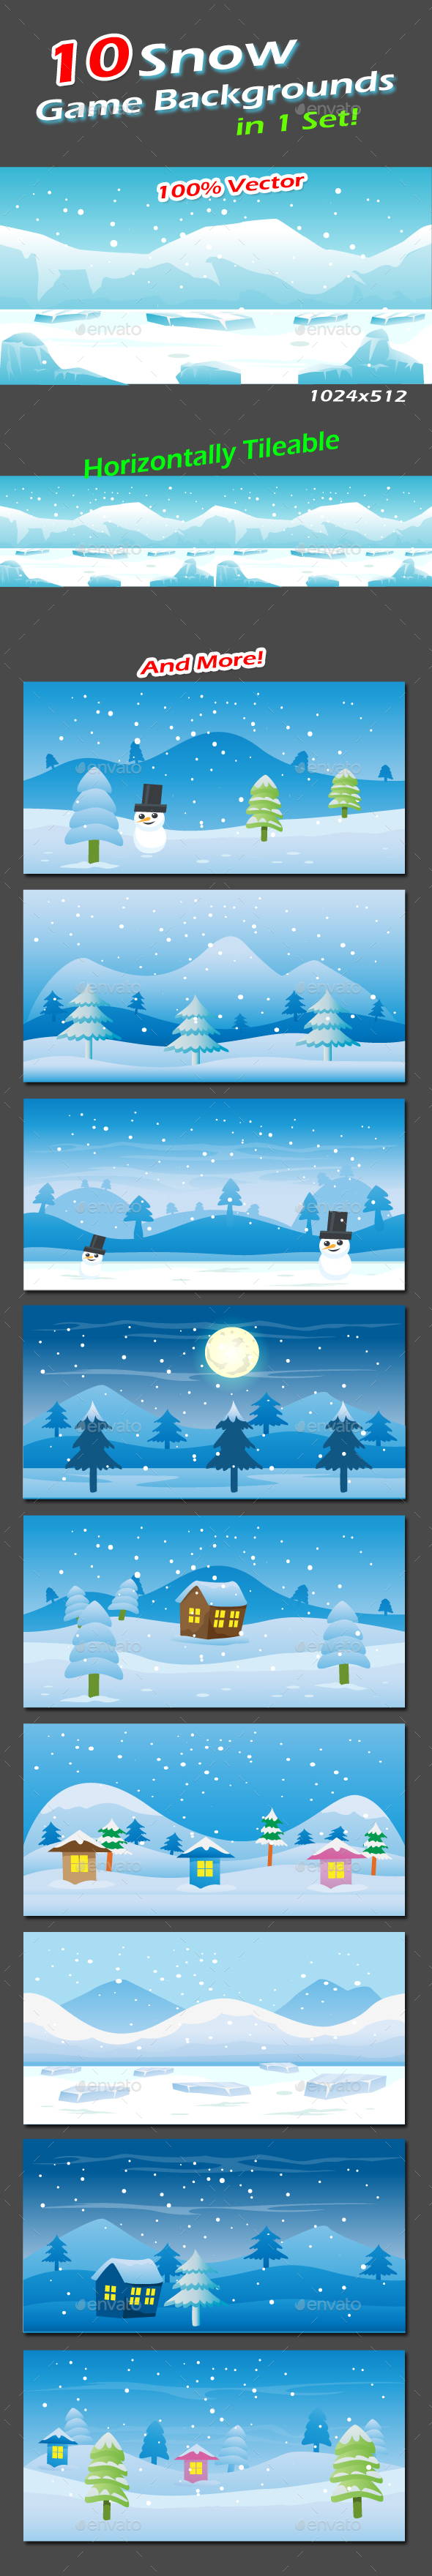 Snow Game Backgrounds Pack - Backgrounds Game Assets